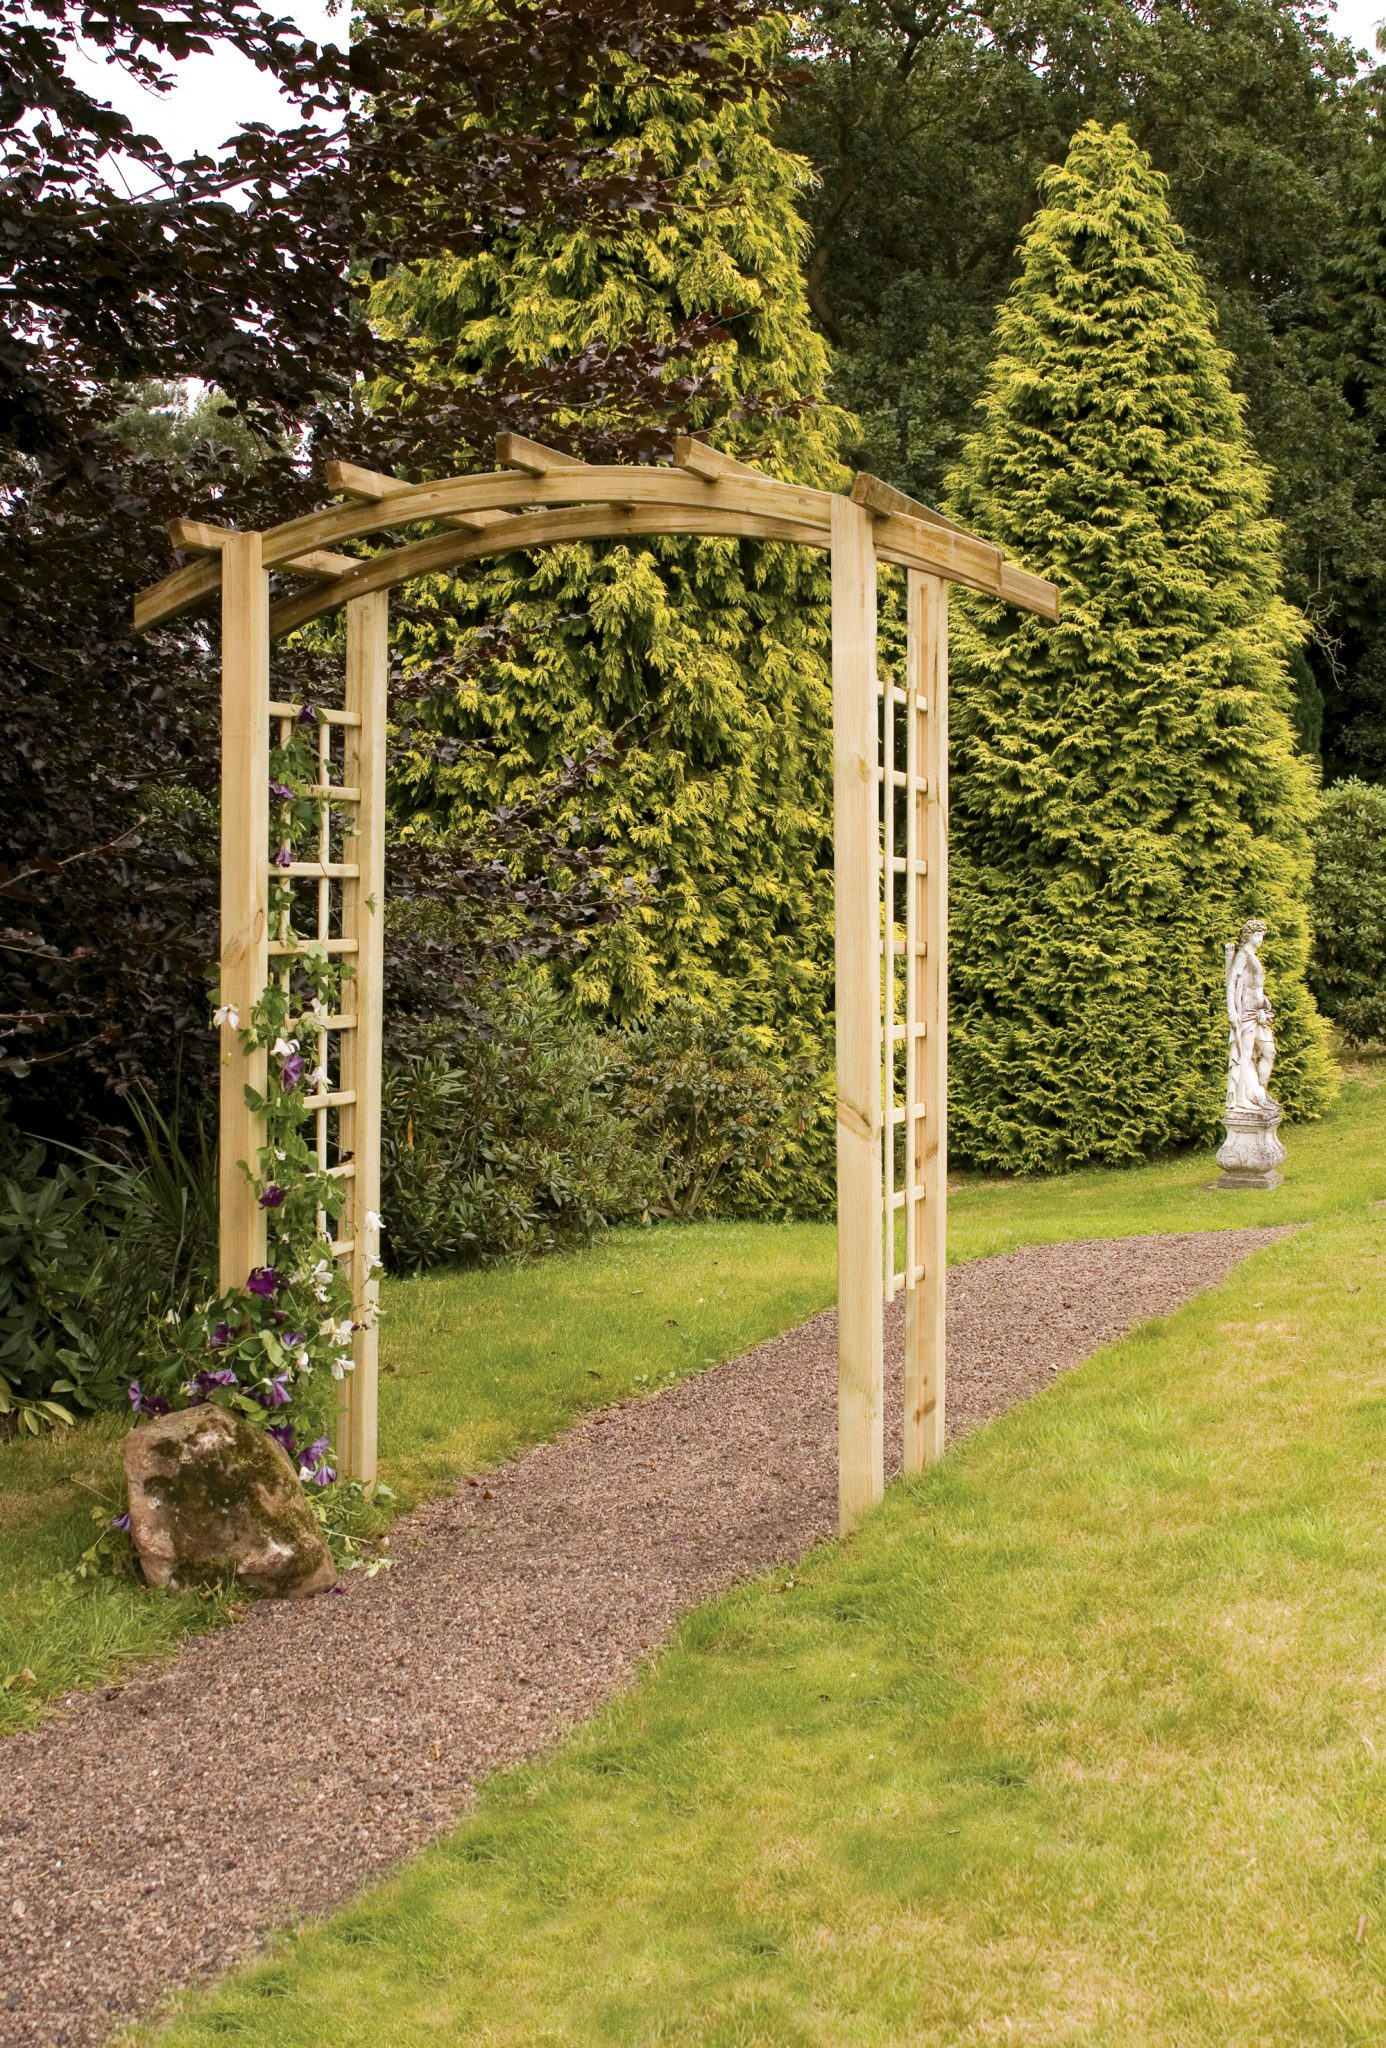 The Bow Top Garden Arch comes with decorative square trellis sides enhancing any garden space. The structure is ideal for creating an impressionable pathway, or as a decorative garden feature. The timber is pressure treated for enhanced protection.